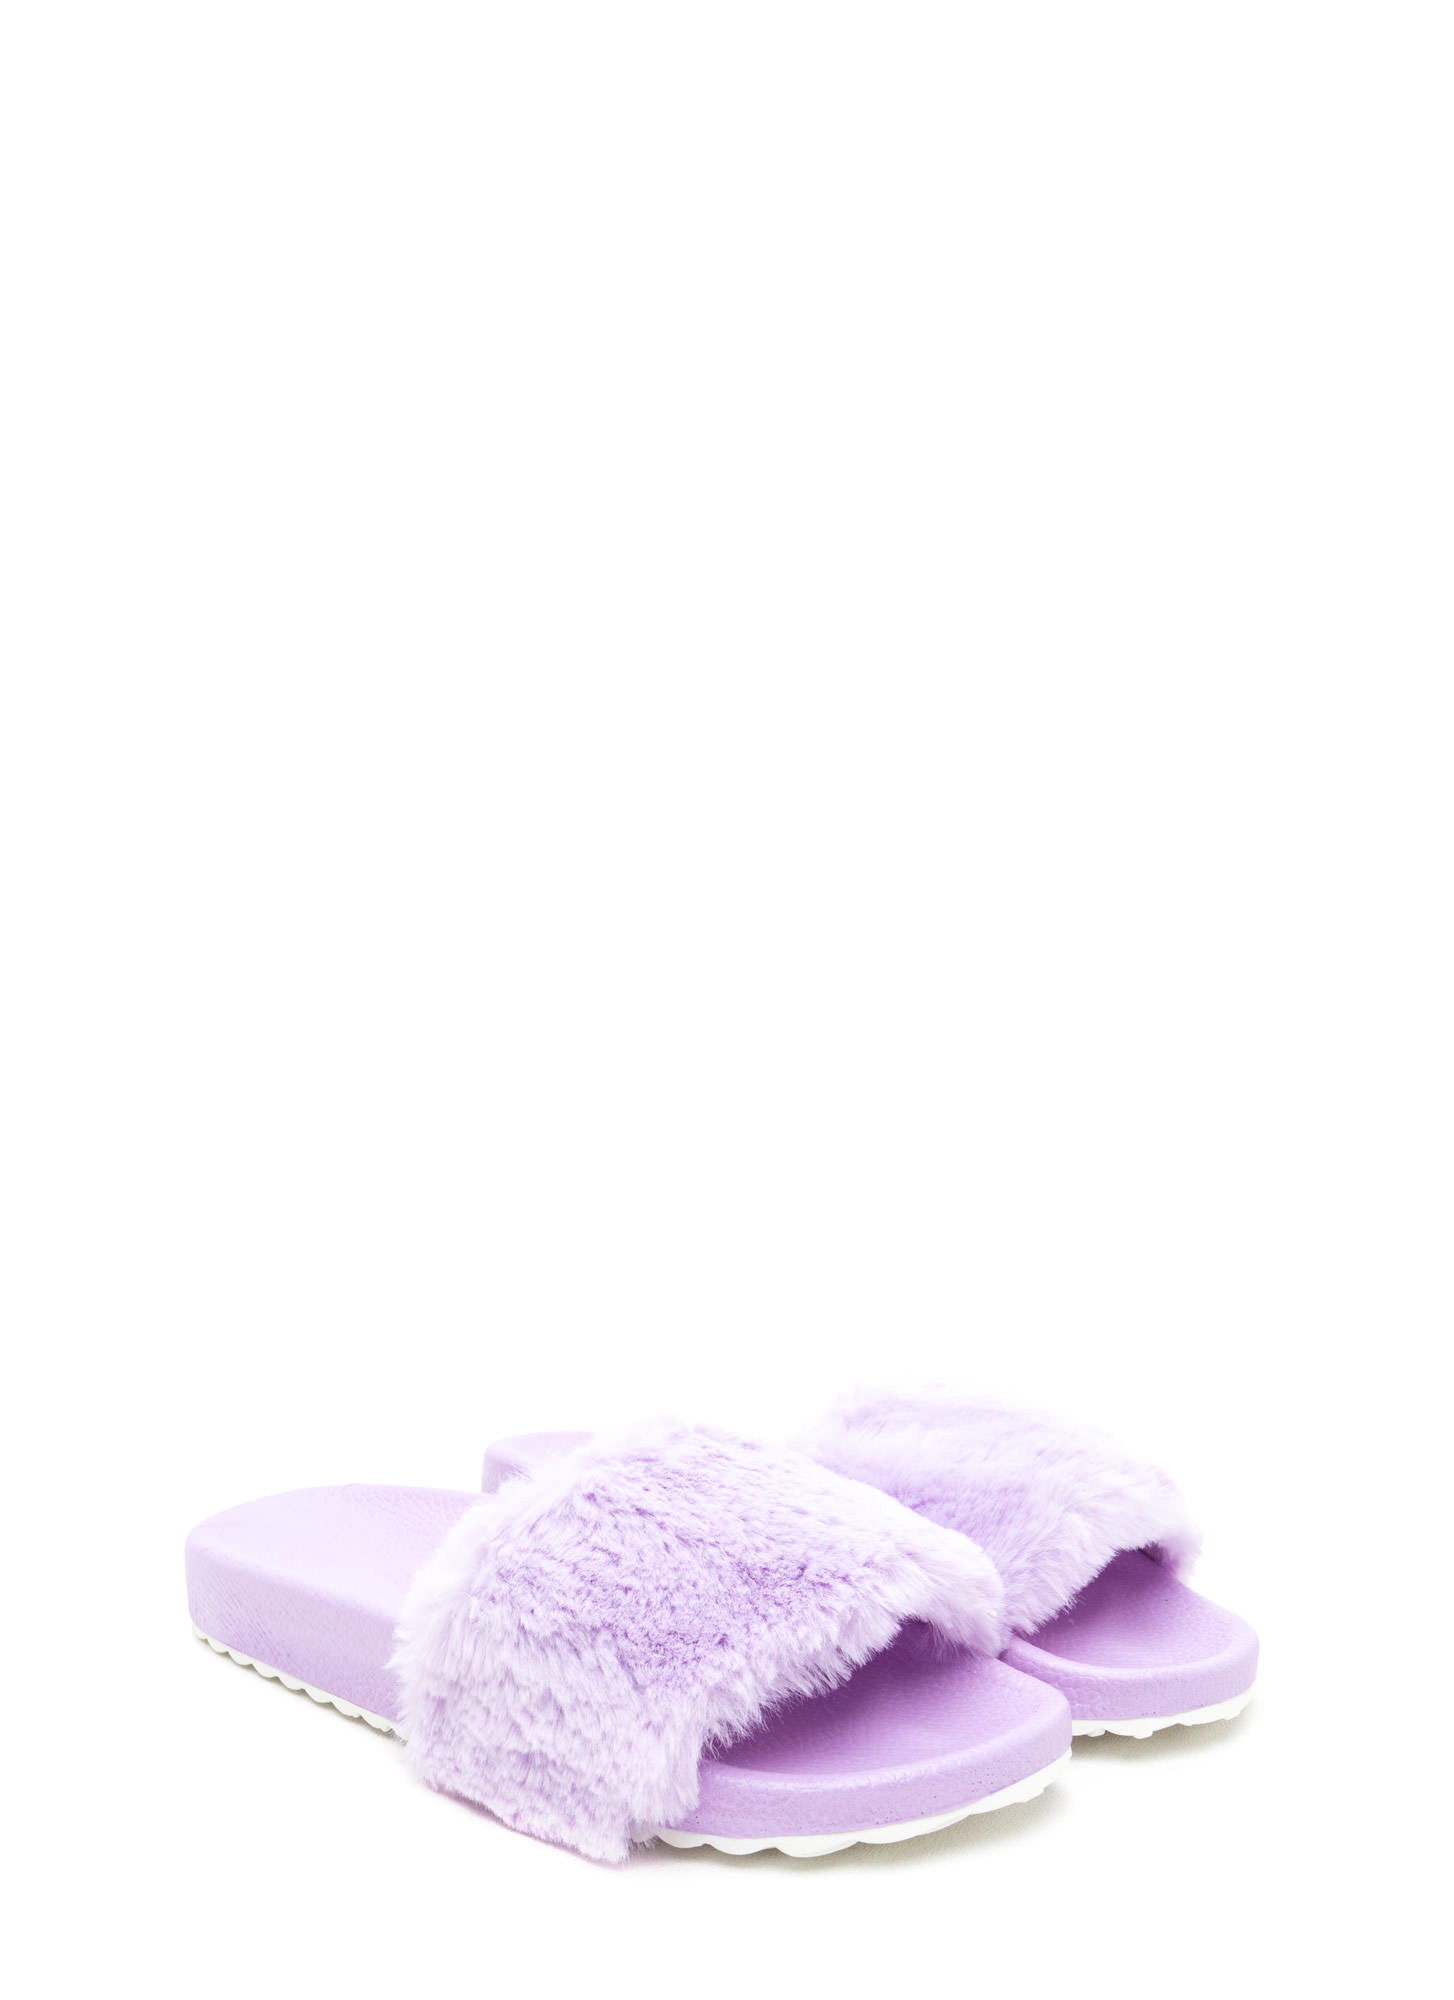 Furry Friends Platform Slide Sandals PINK BLACK LILAC RED FUCHSIA - GoJane.com